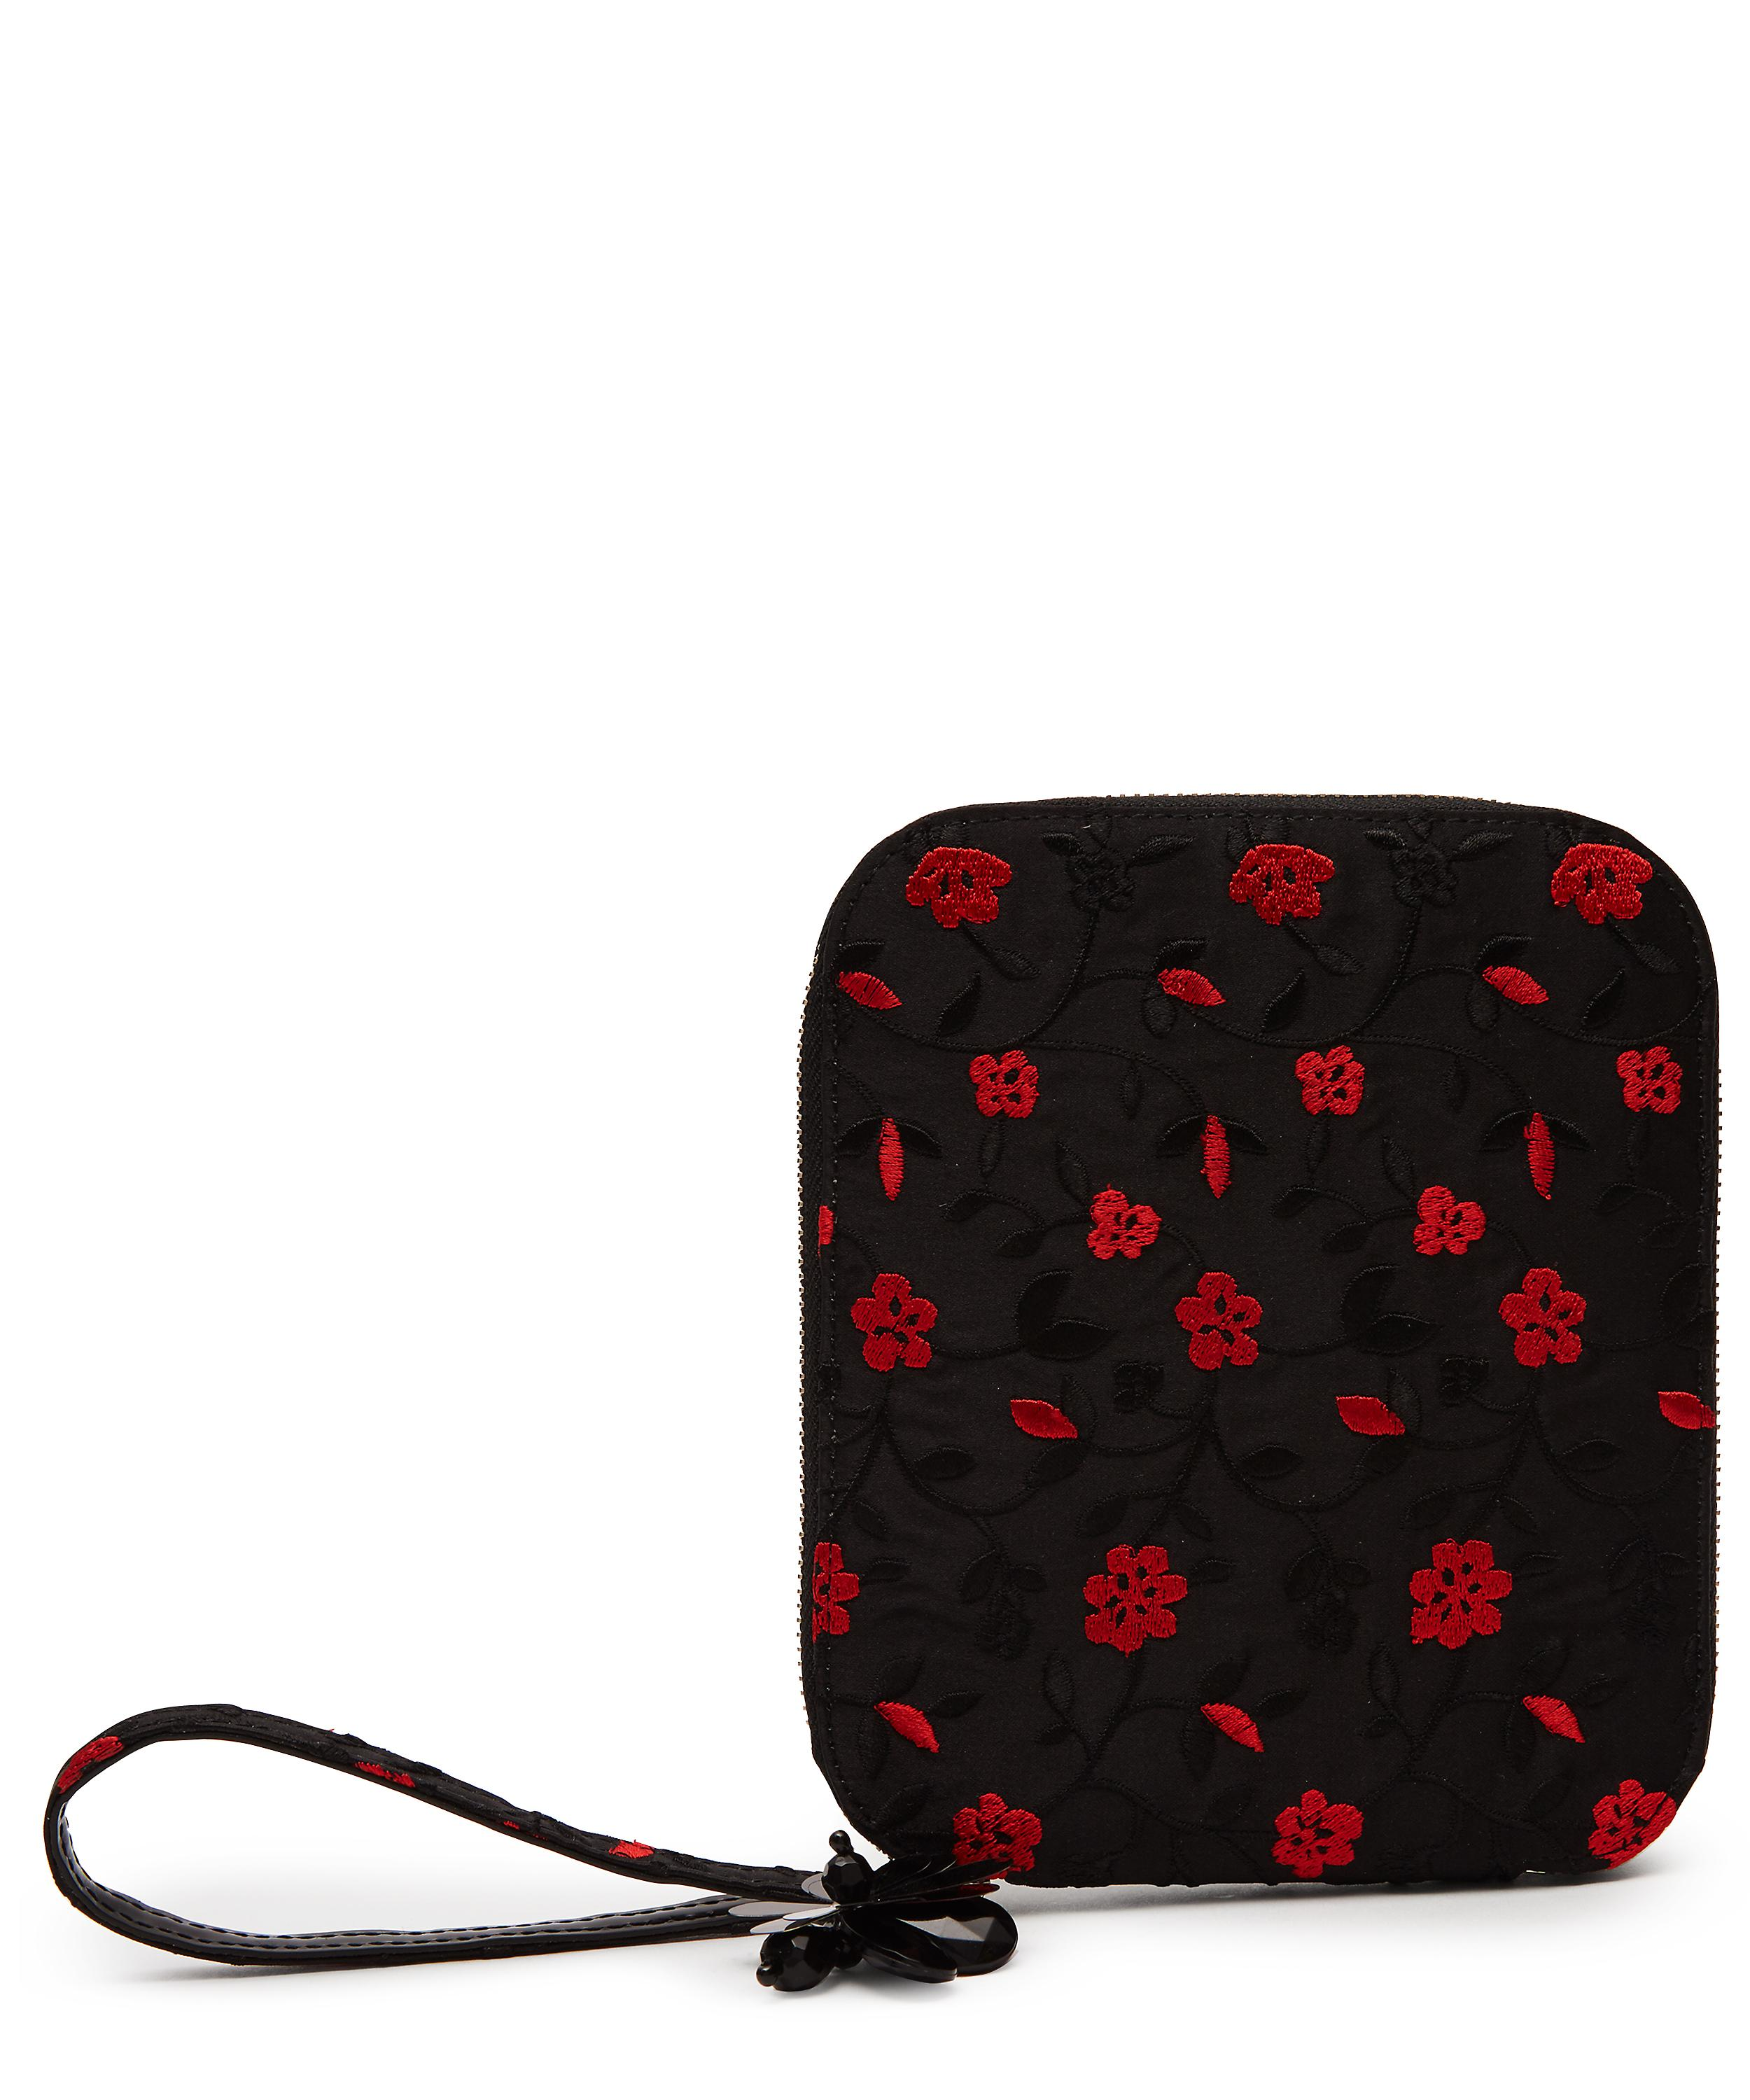 03a87640d0 Embroidered Floral Wristlet Bag